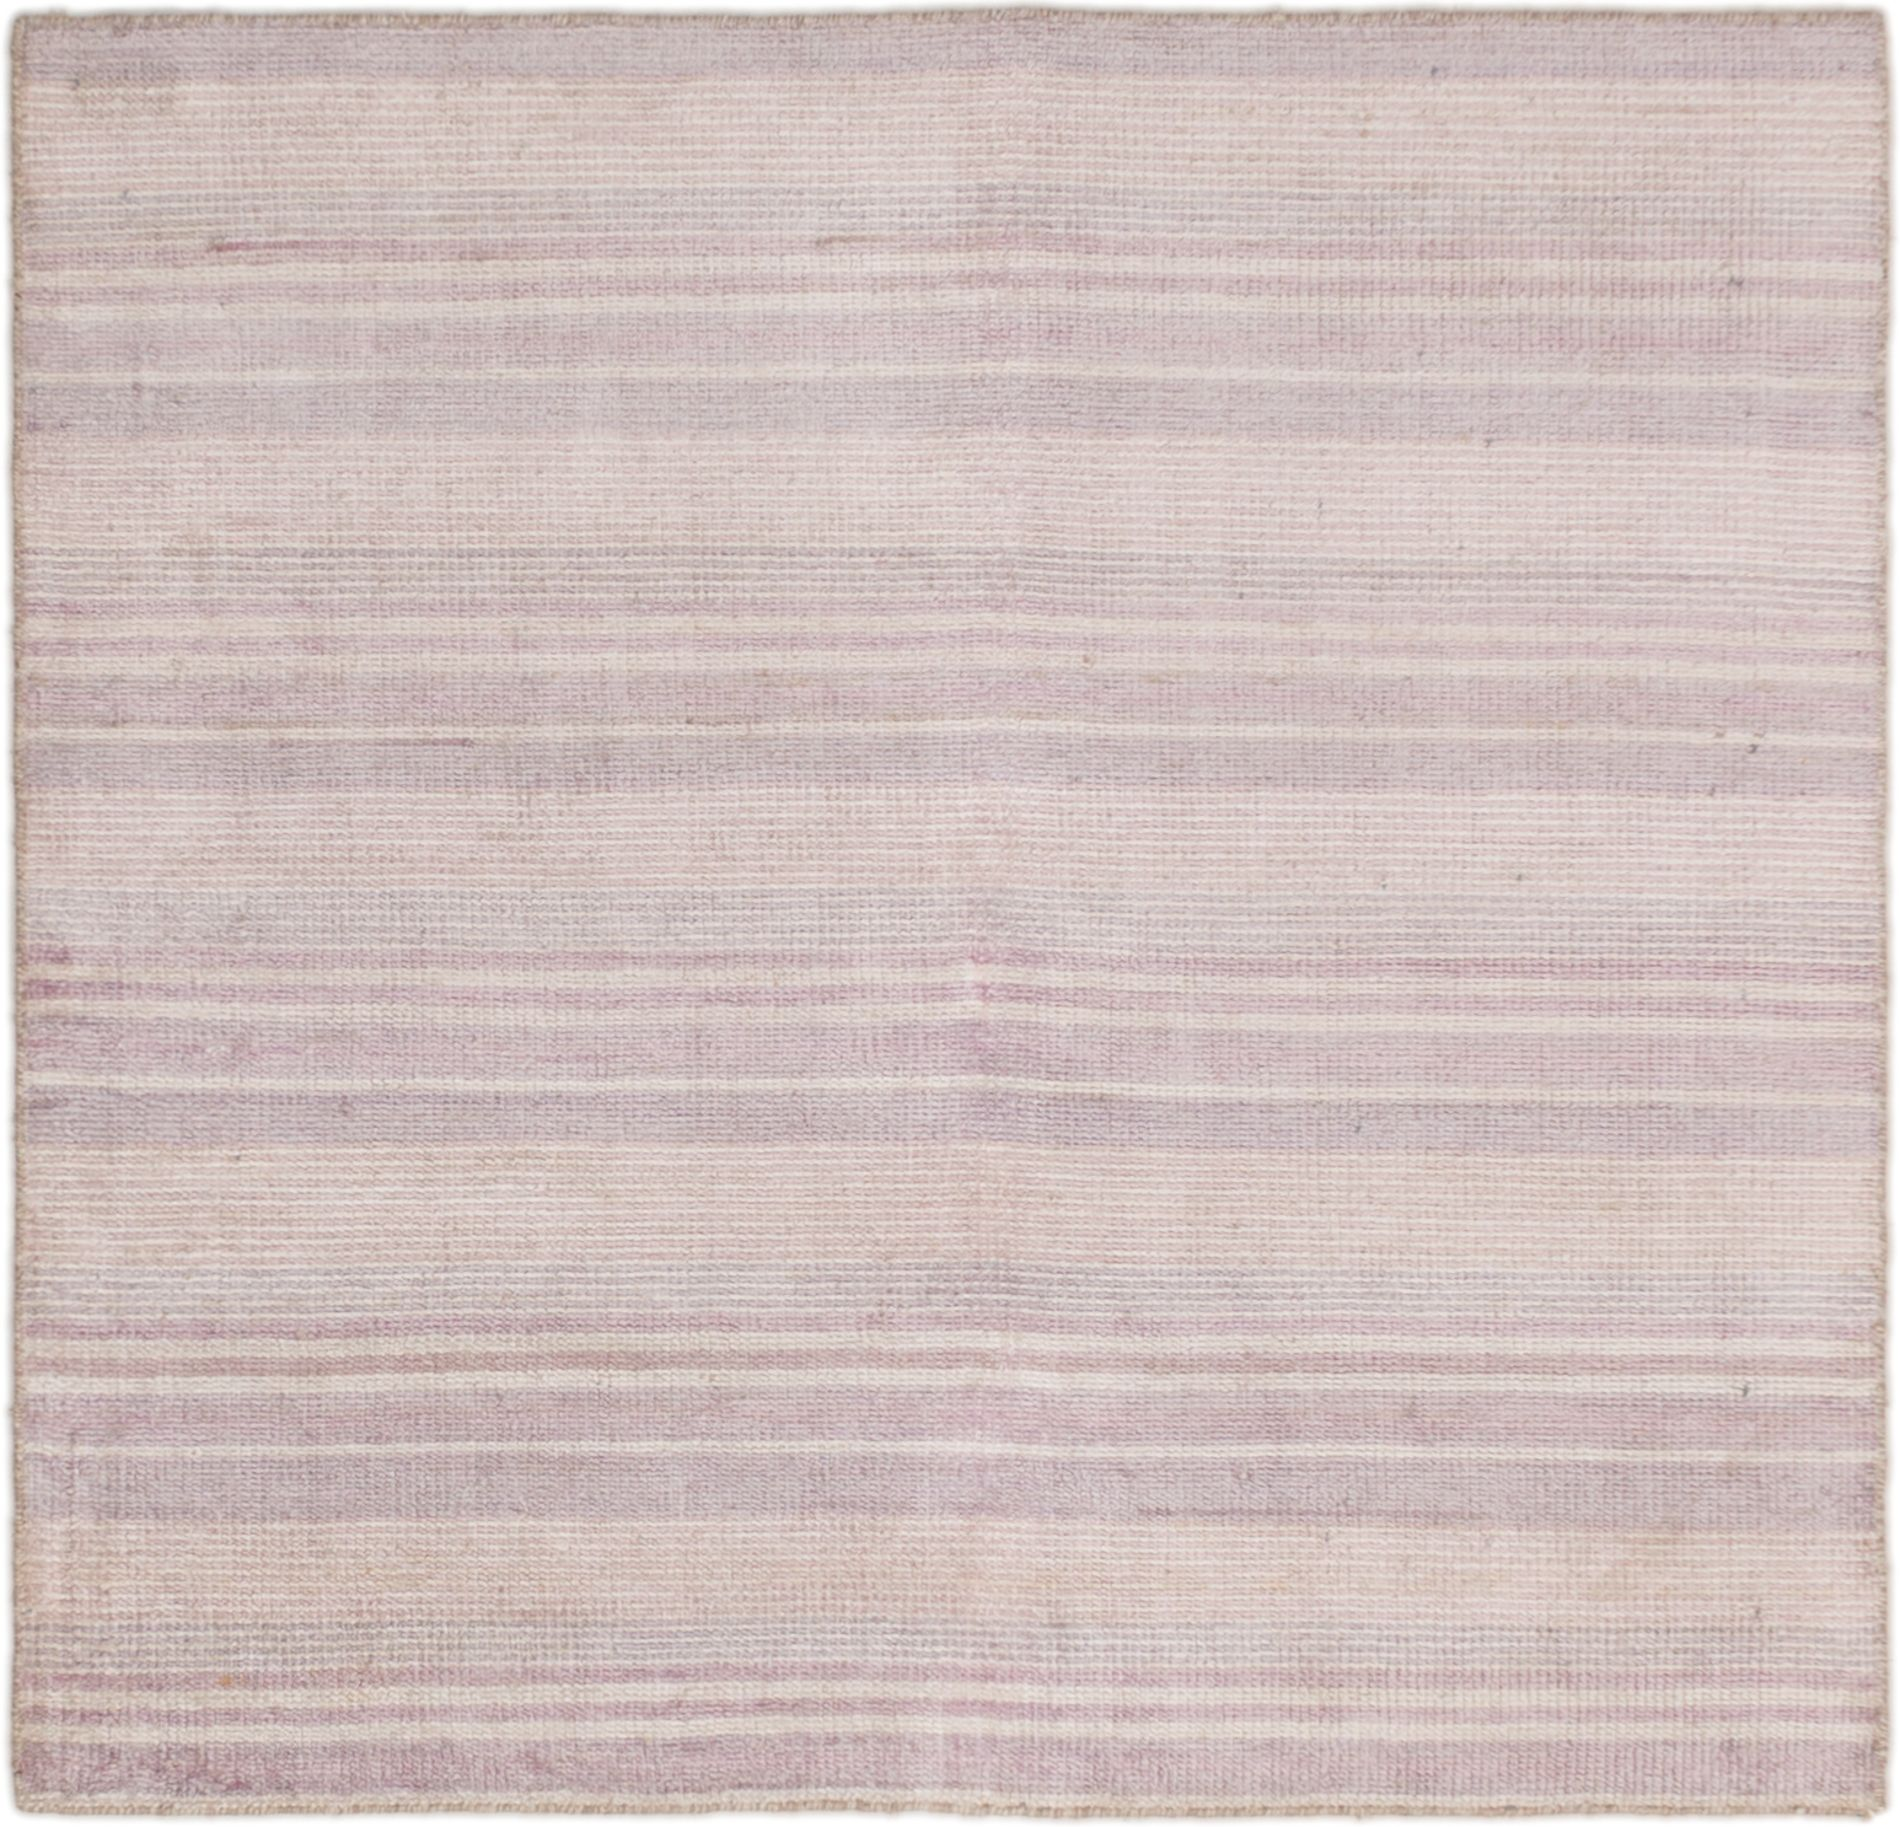 "Hand-knotted Sari Silk Purple Silk Rug 5'3"" x 5'1"" Size: 5'3"" x 5'1"""